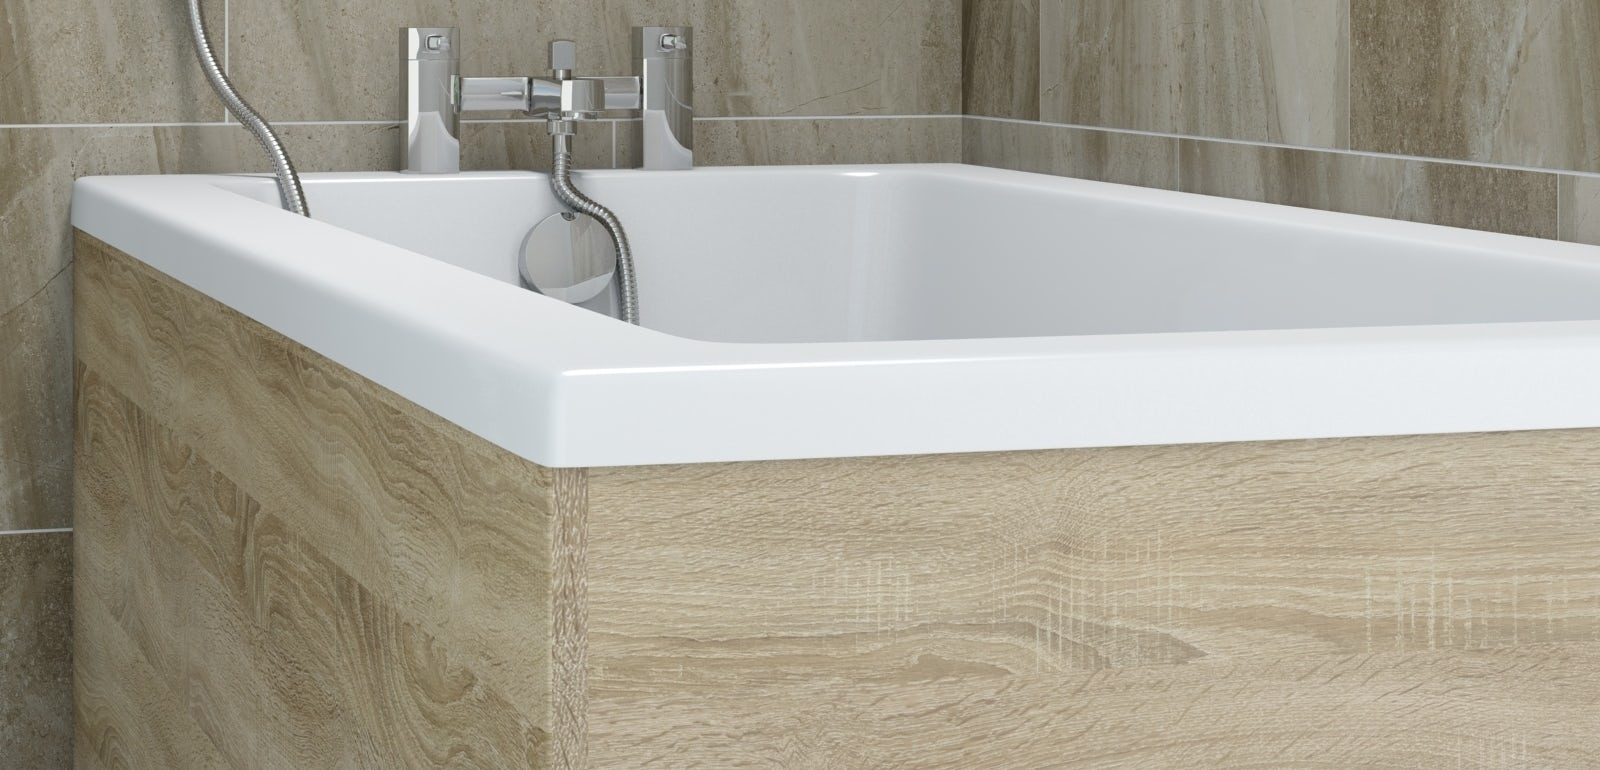 Bath panel buying guide